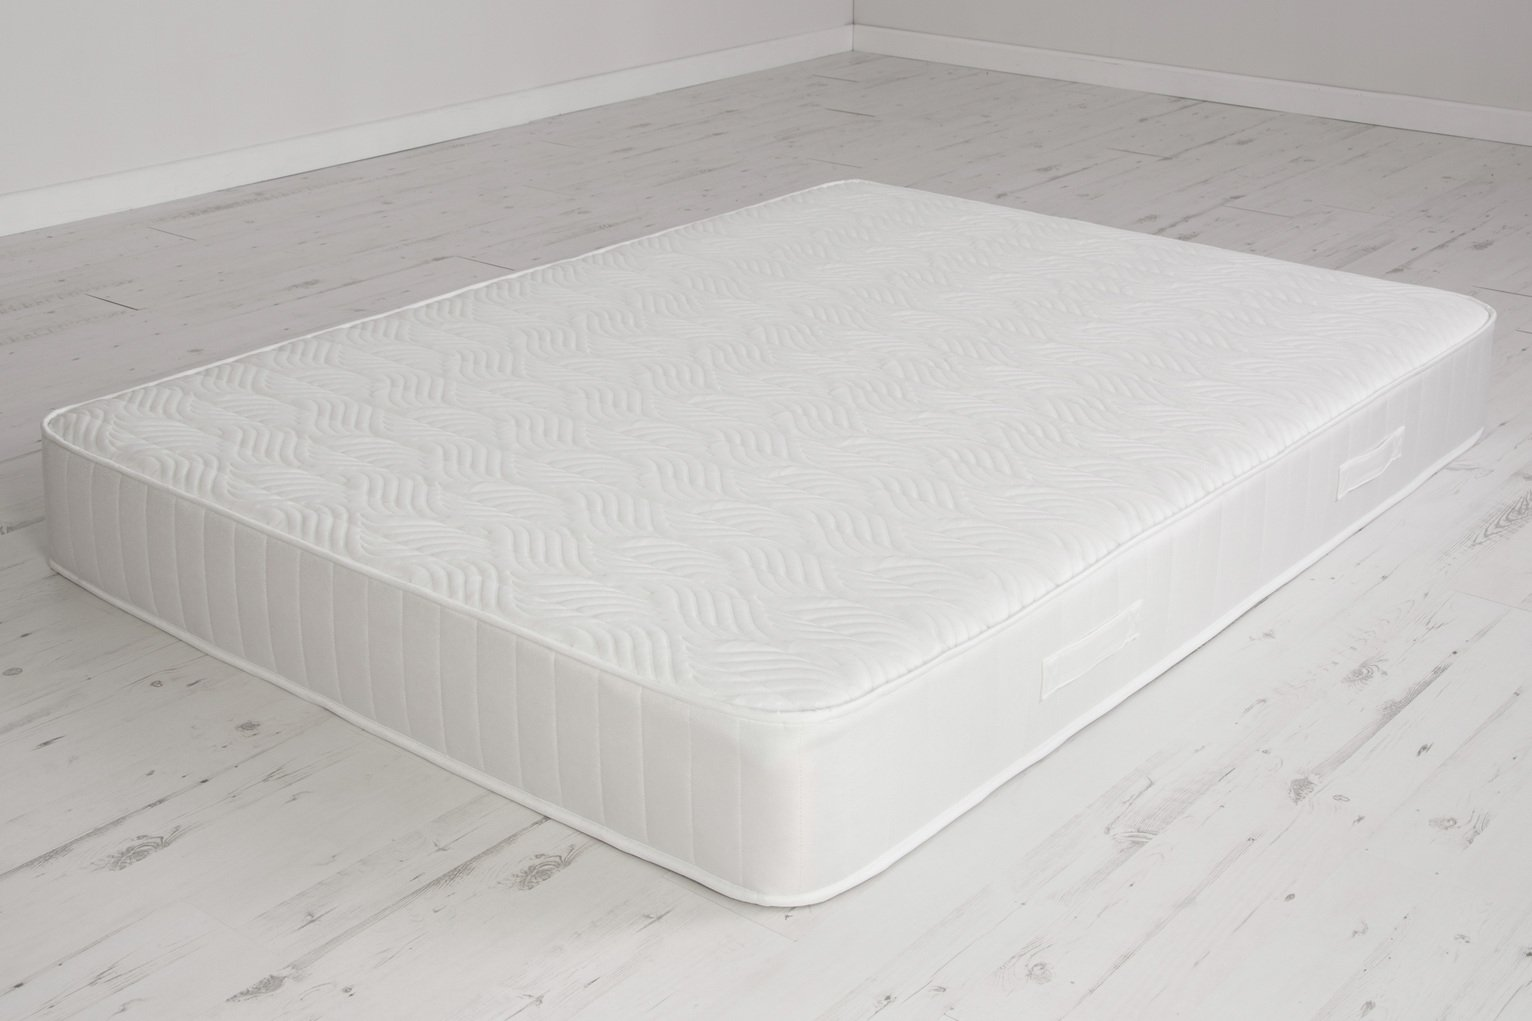 Image of Airsprung - Astall 1500 Memory Foam Small - Double Mattress